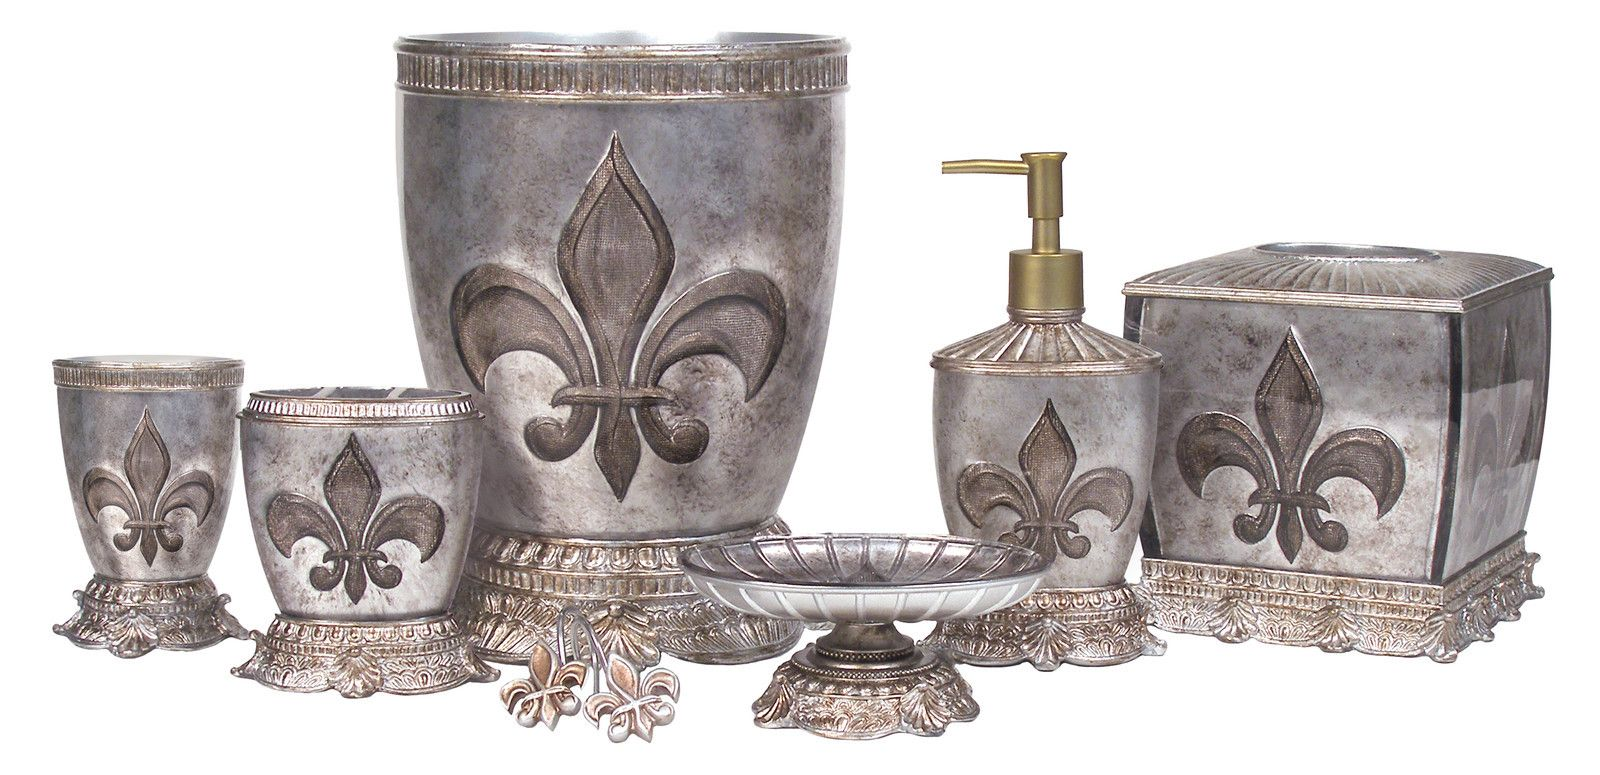 Fleur Di Lis Bathroom French Flair Luxe Fleur De Lis Bath Accessories Bathroom